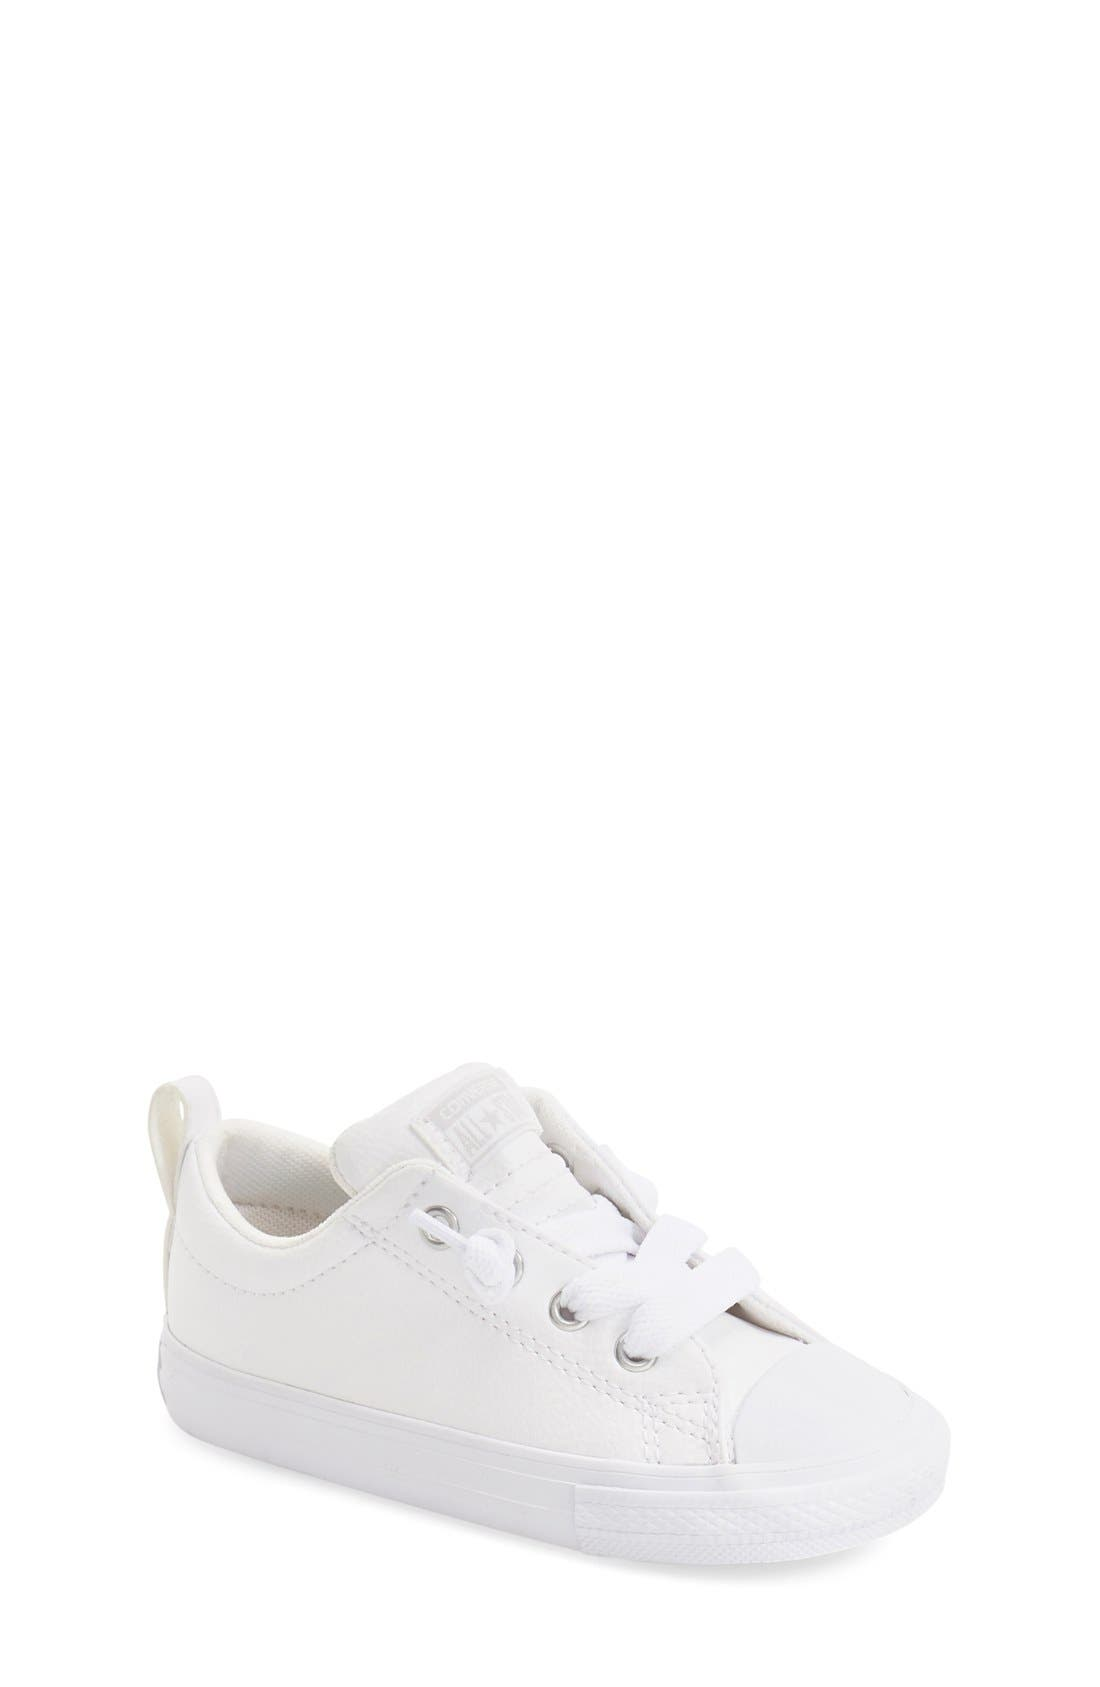 Main Image - Converse Chuck Taylor® All Star® Ox Faux Leather Sneaker (Toddler, Little Kid & Big Kid)